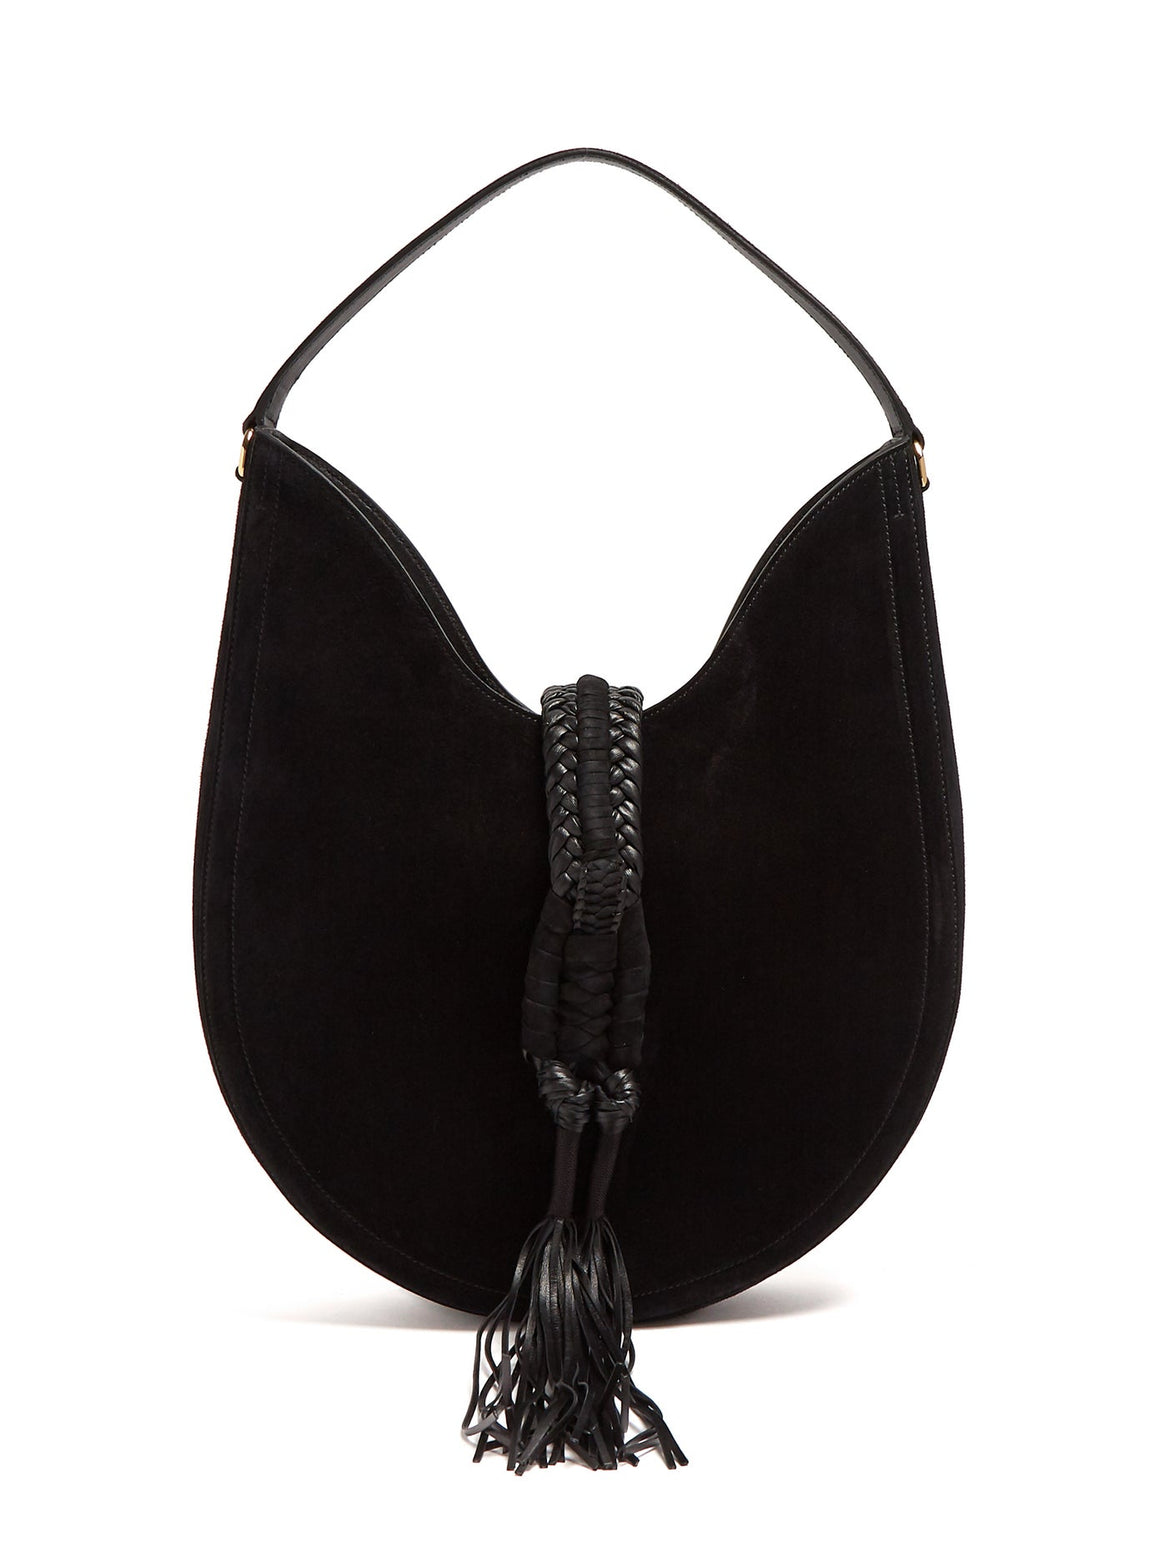 Altuzarra Ghianda Large Suede Shoulder Bag